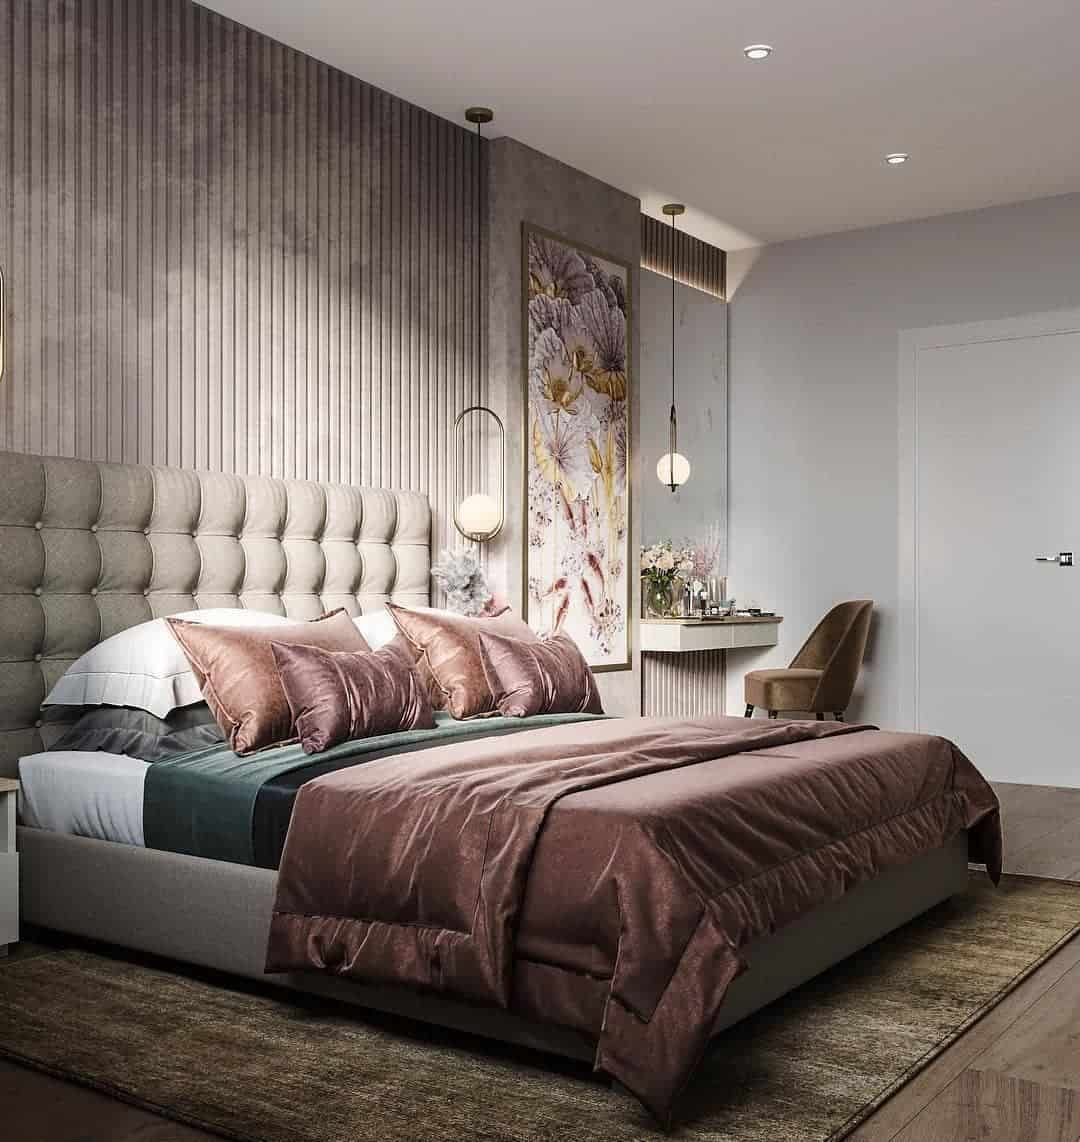 Bedroom Trends 2021 Top 12 Efficient Ideas To Refresh Your Home